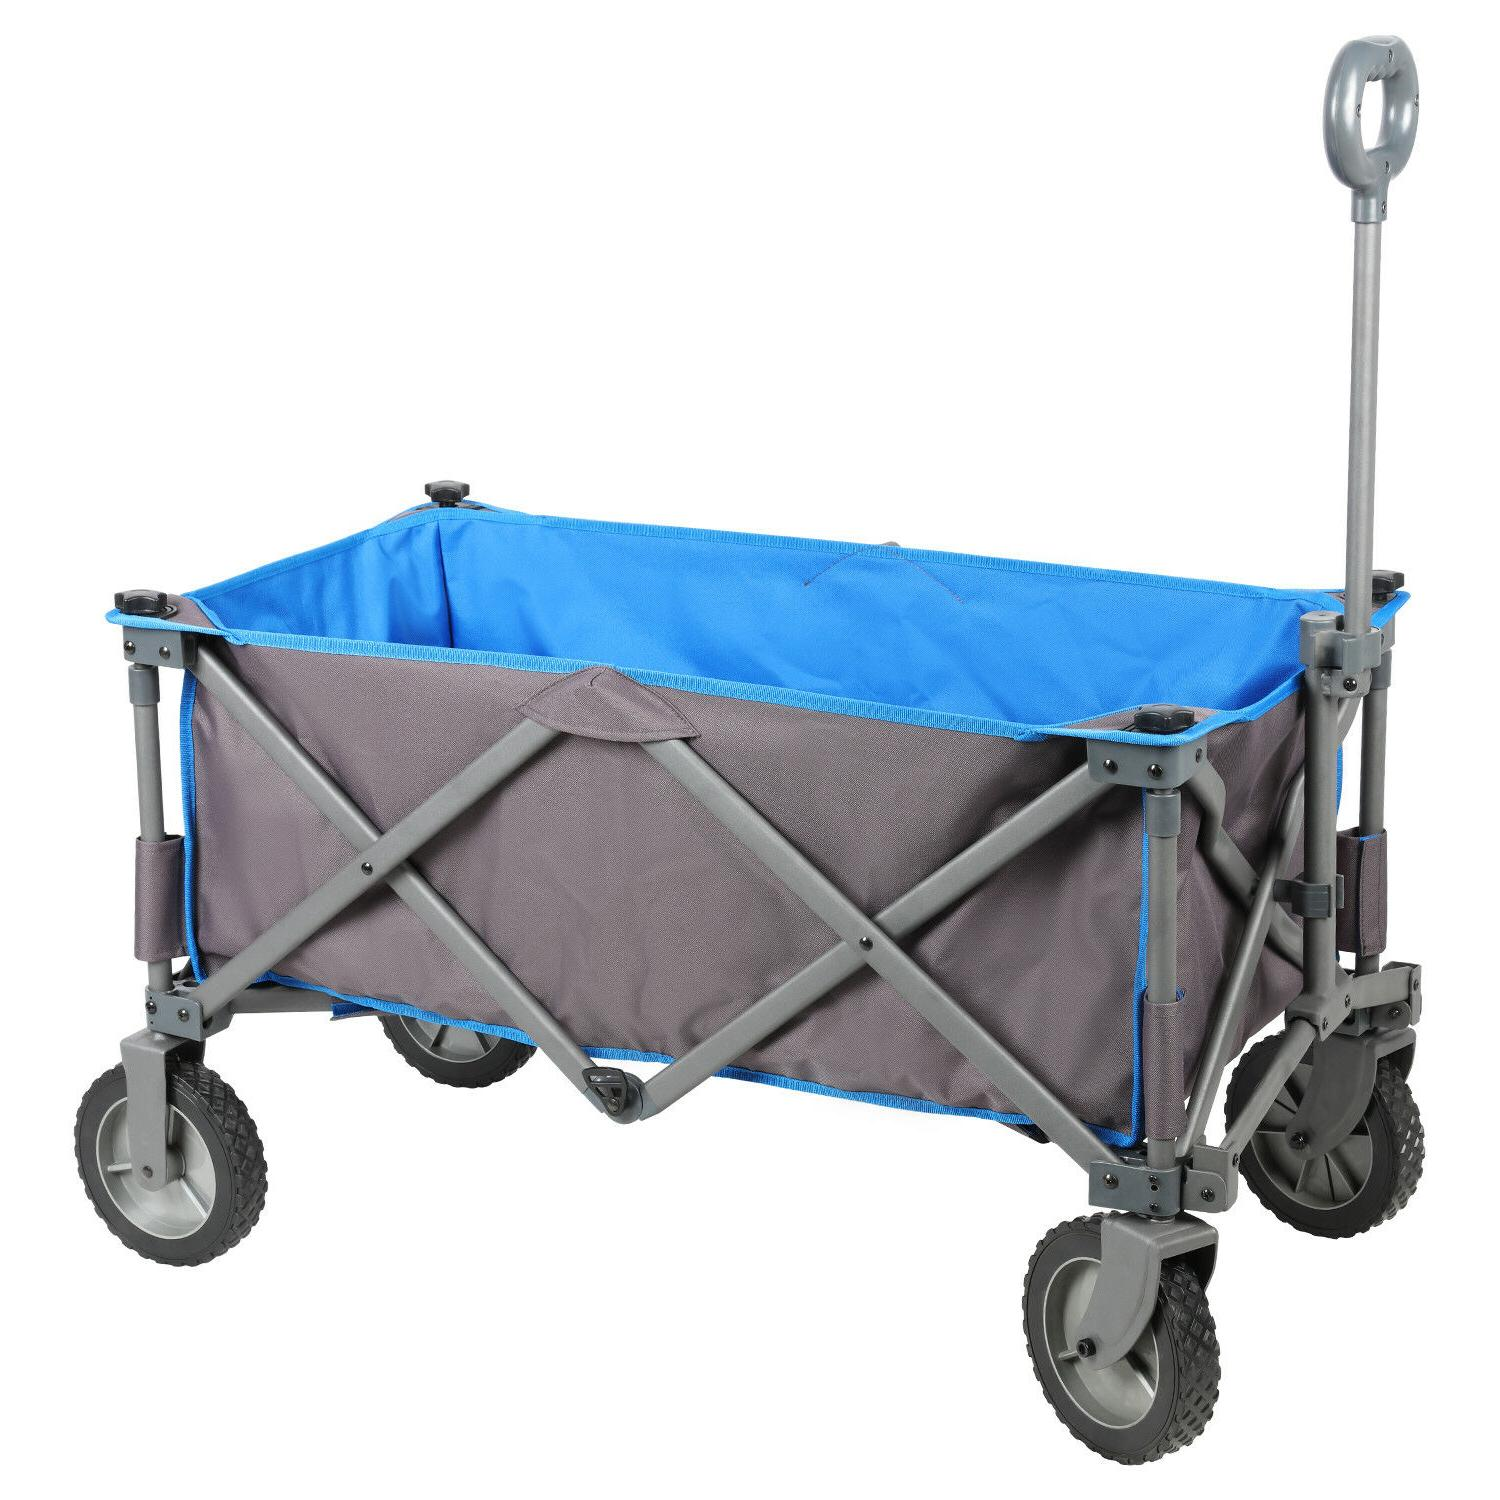 CREATIVE Duty Utility Wagon, Blue - Beast!